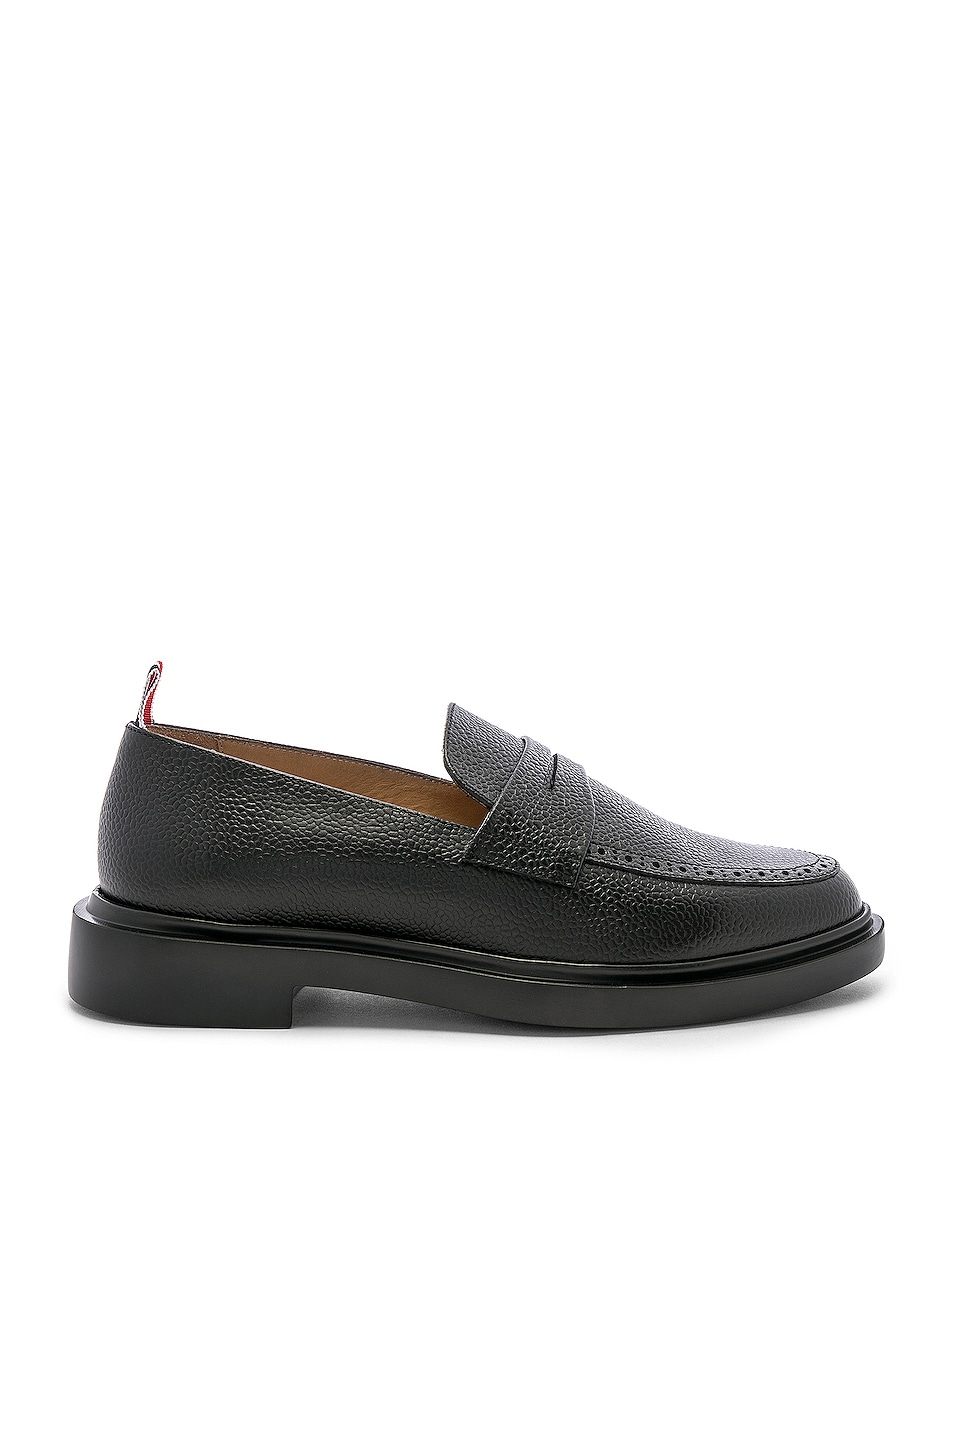 Image 1 of Thom Browne Rubber Sole Loafer in Black